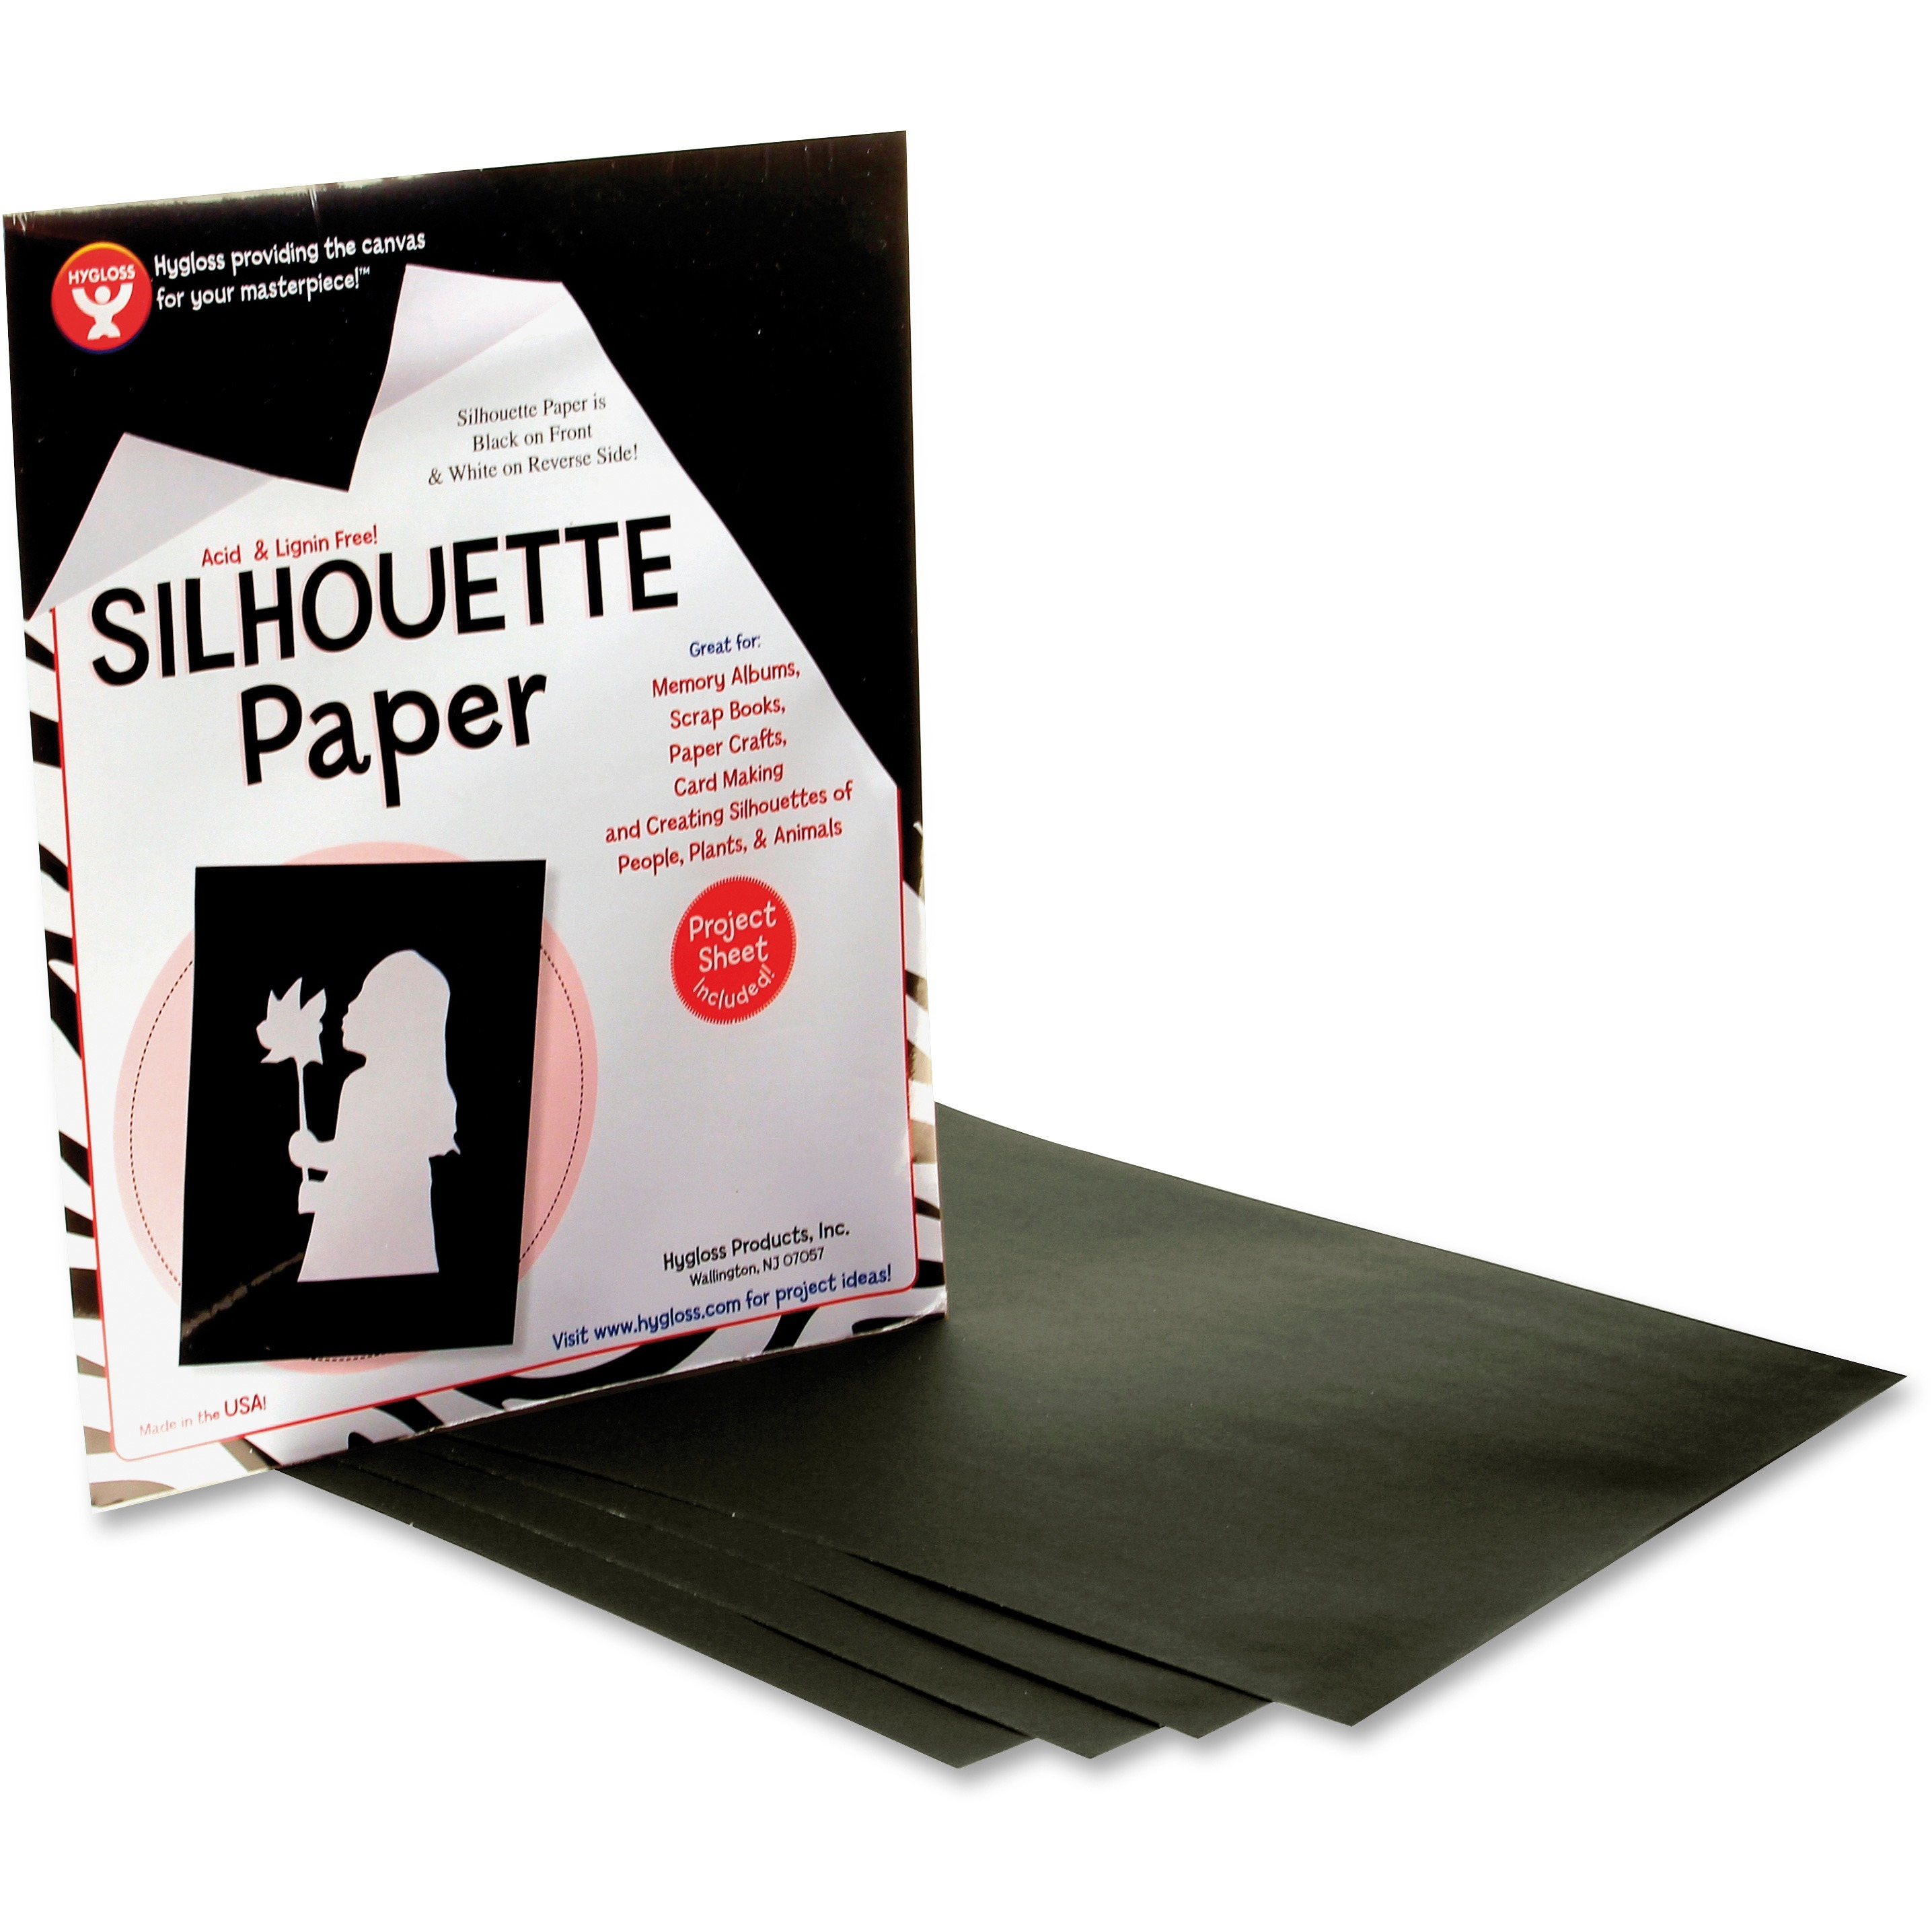 Hygloss, HYX14851, Silhouette Paper, 1 / Pack, Black,White